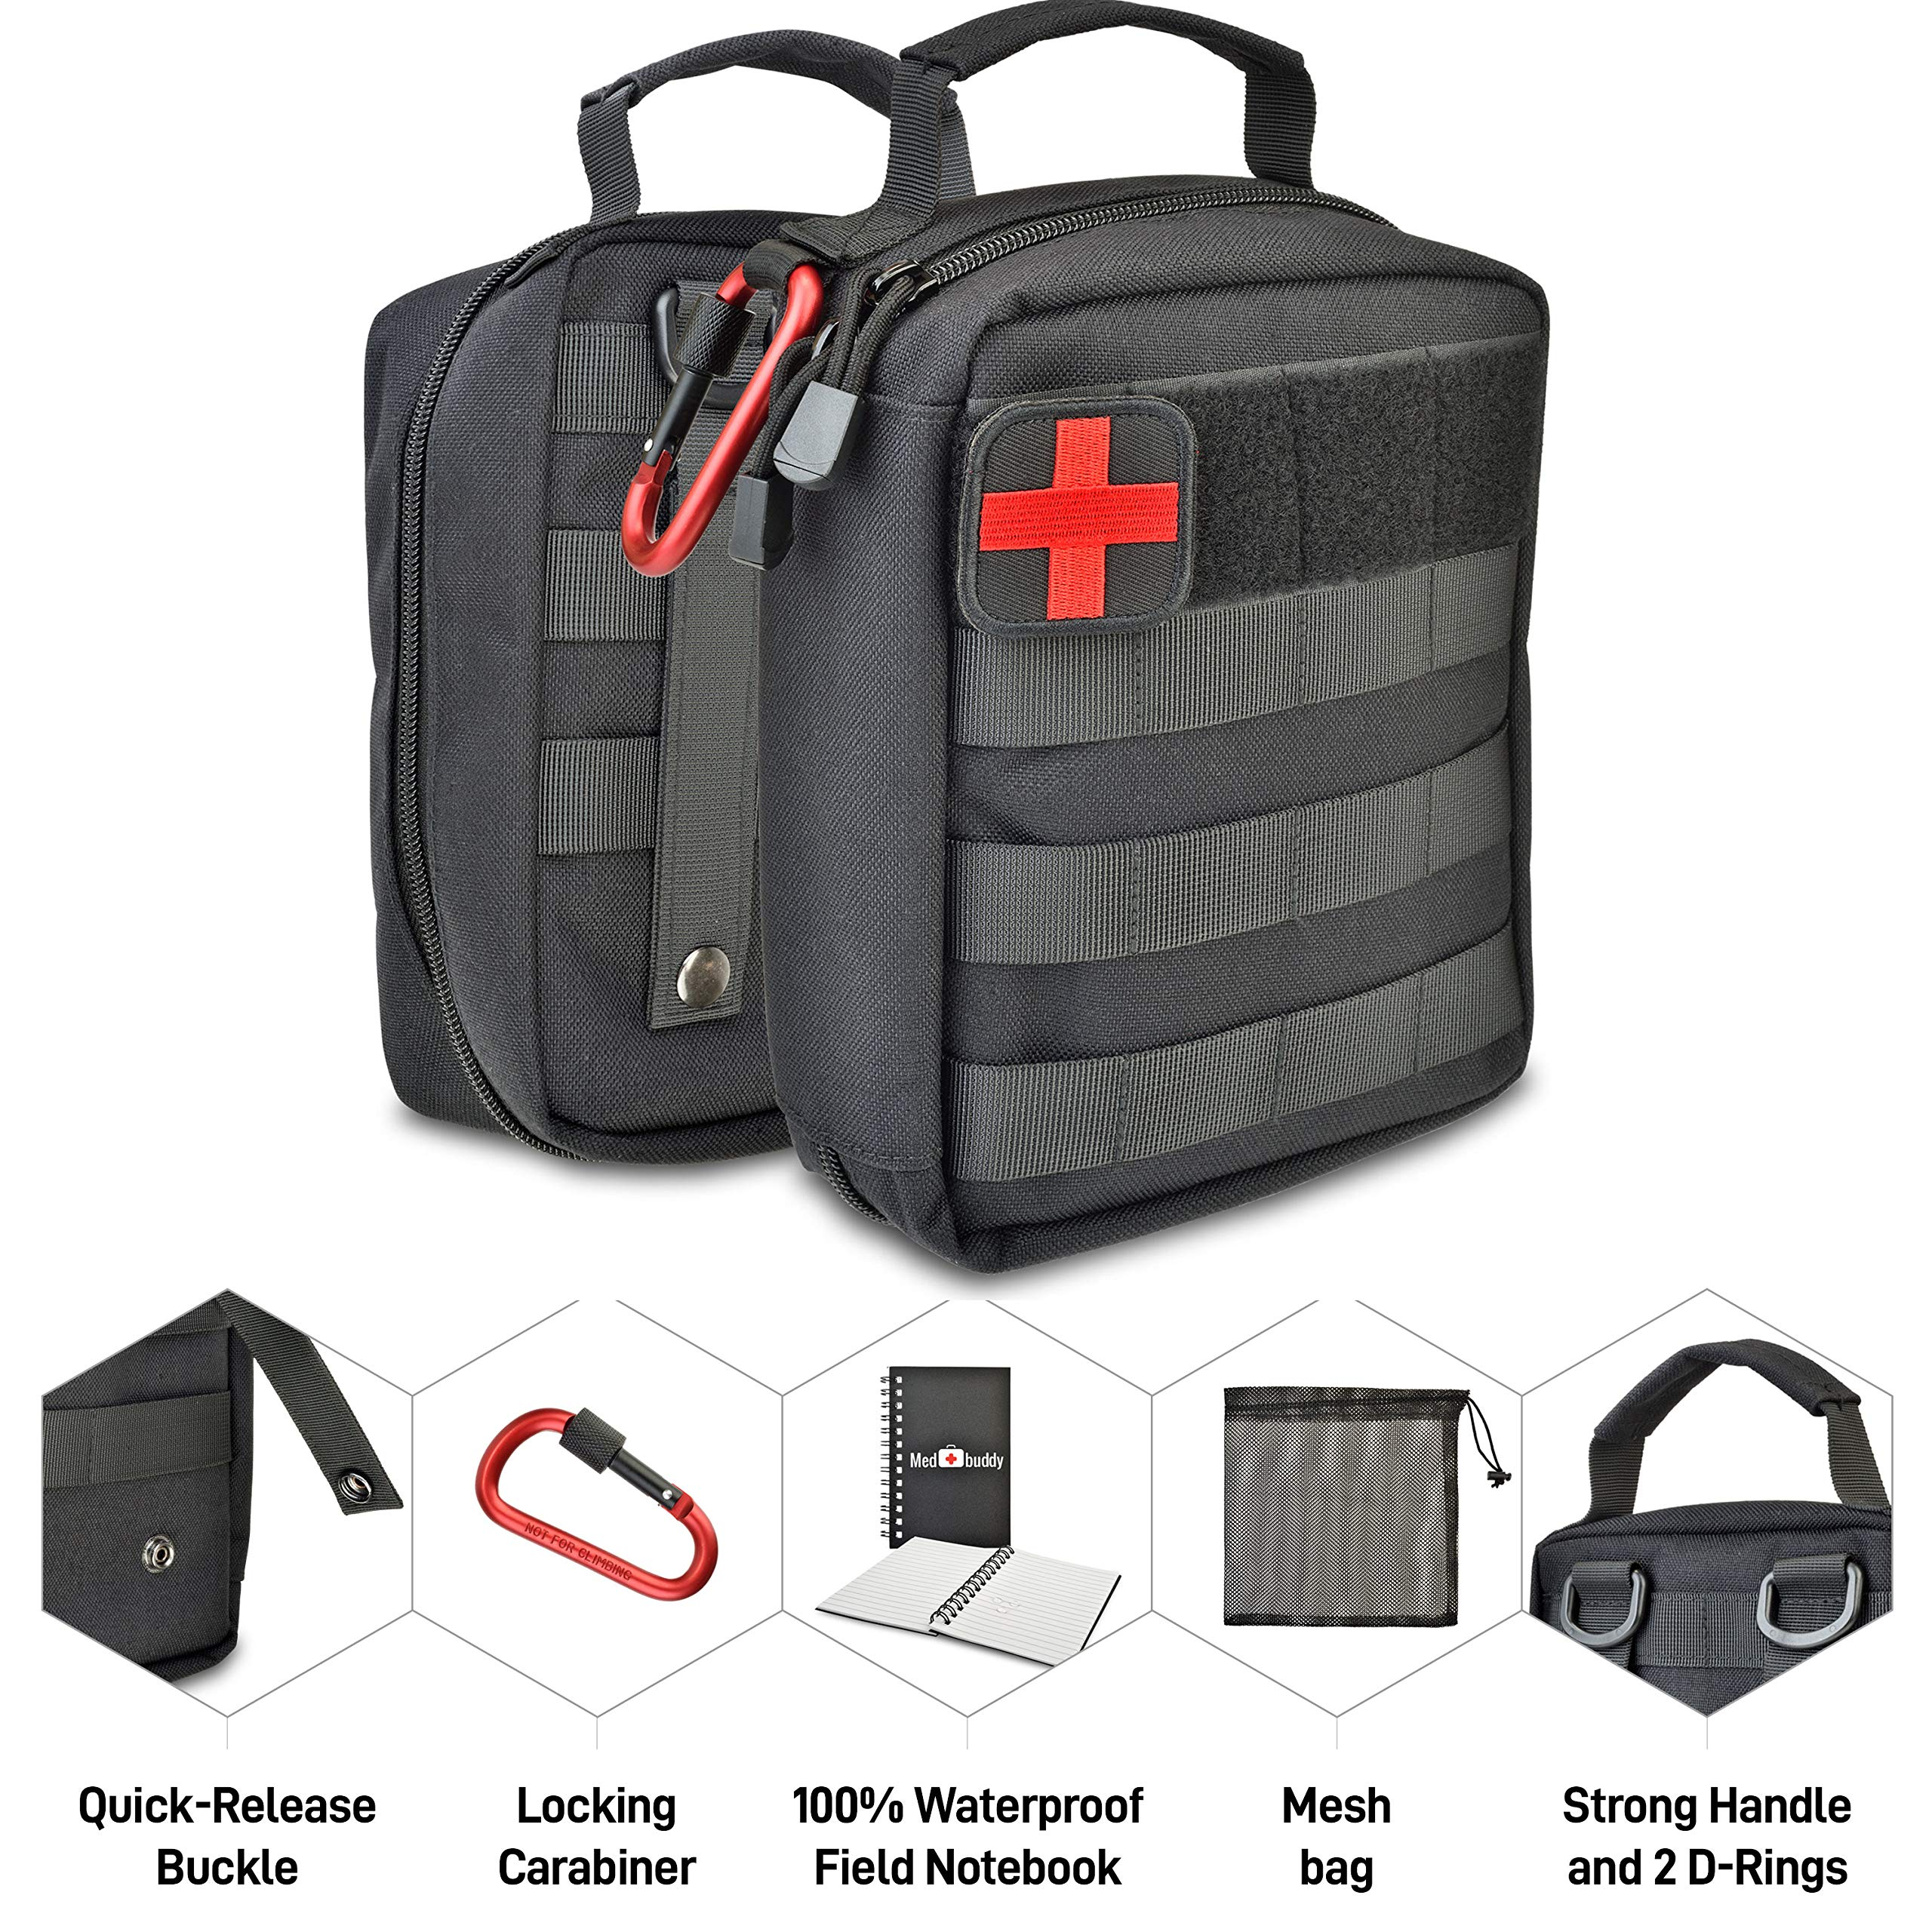 Tactical Outdoor Admin Pouch - Emergency Kit, Military Grade 1000D EDC, MOLLE, Utility Case + Waterproof Notebook, Locking Carabiner, Mesh Organizer, EMT - MedBuddy